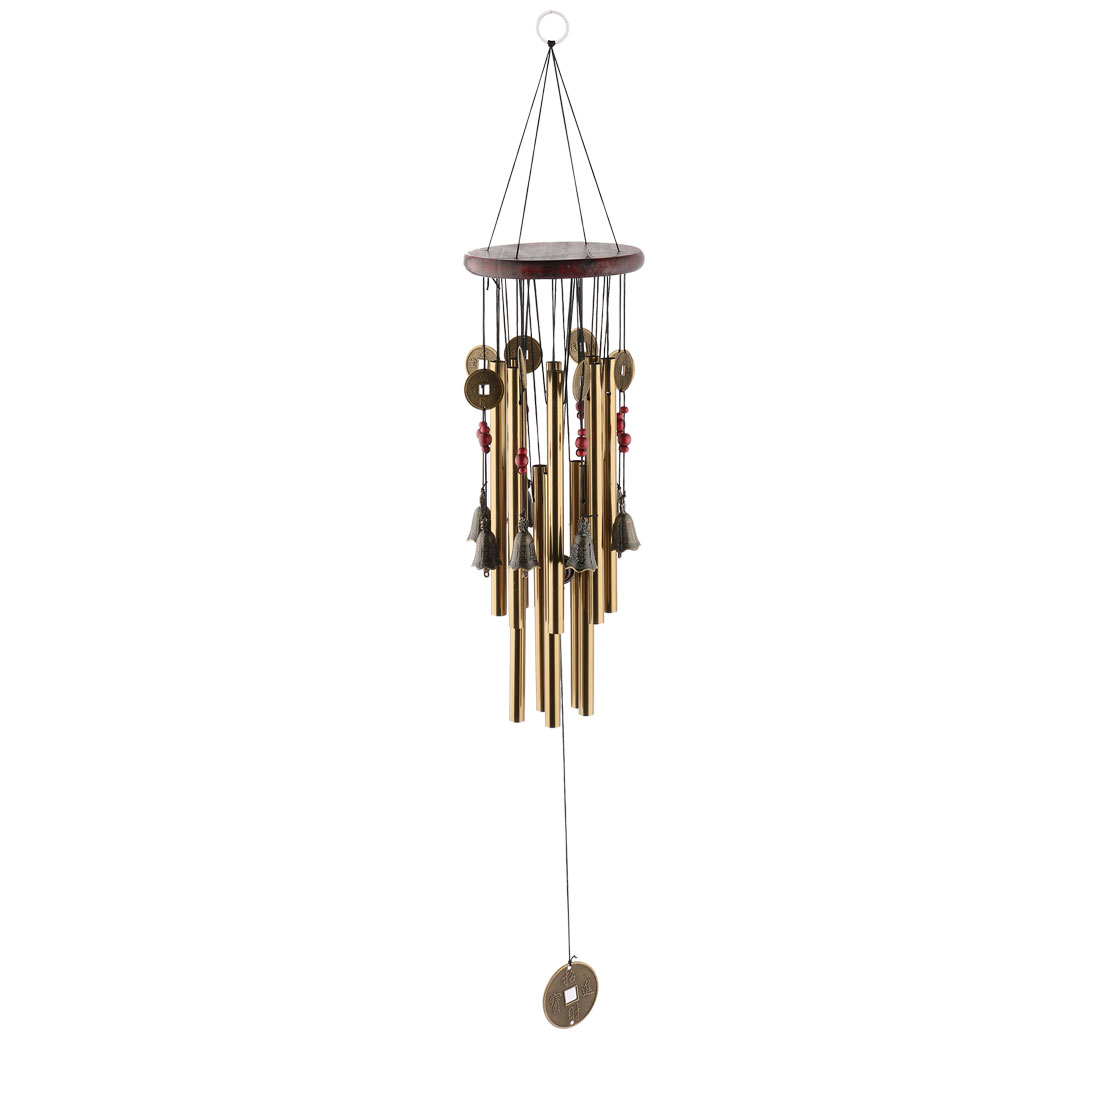 Living Room Metal Tubes Hanging Decor Gift Wind Chime Bell Windbell Bronze Tone